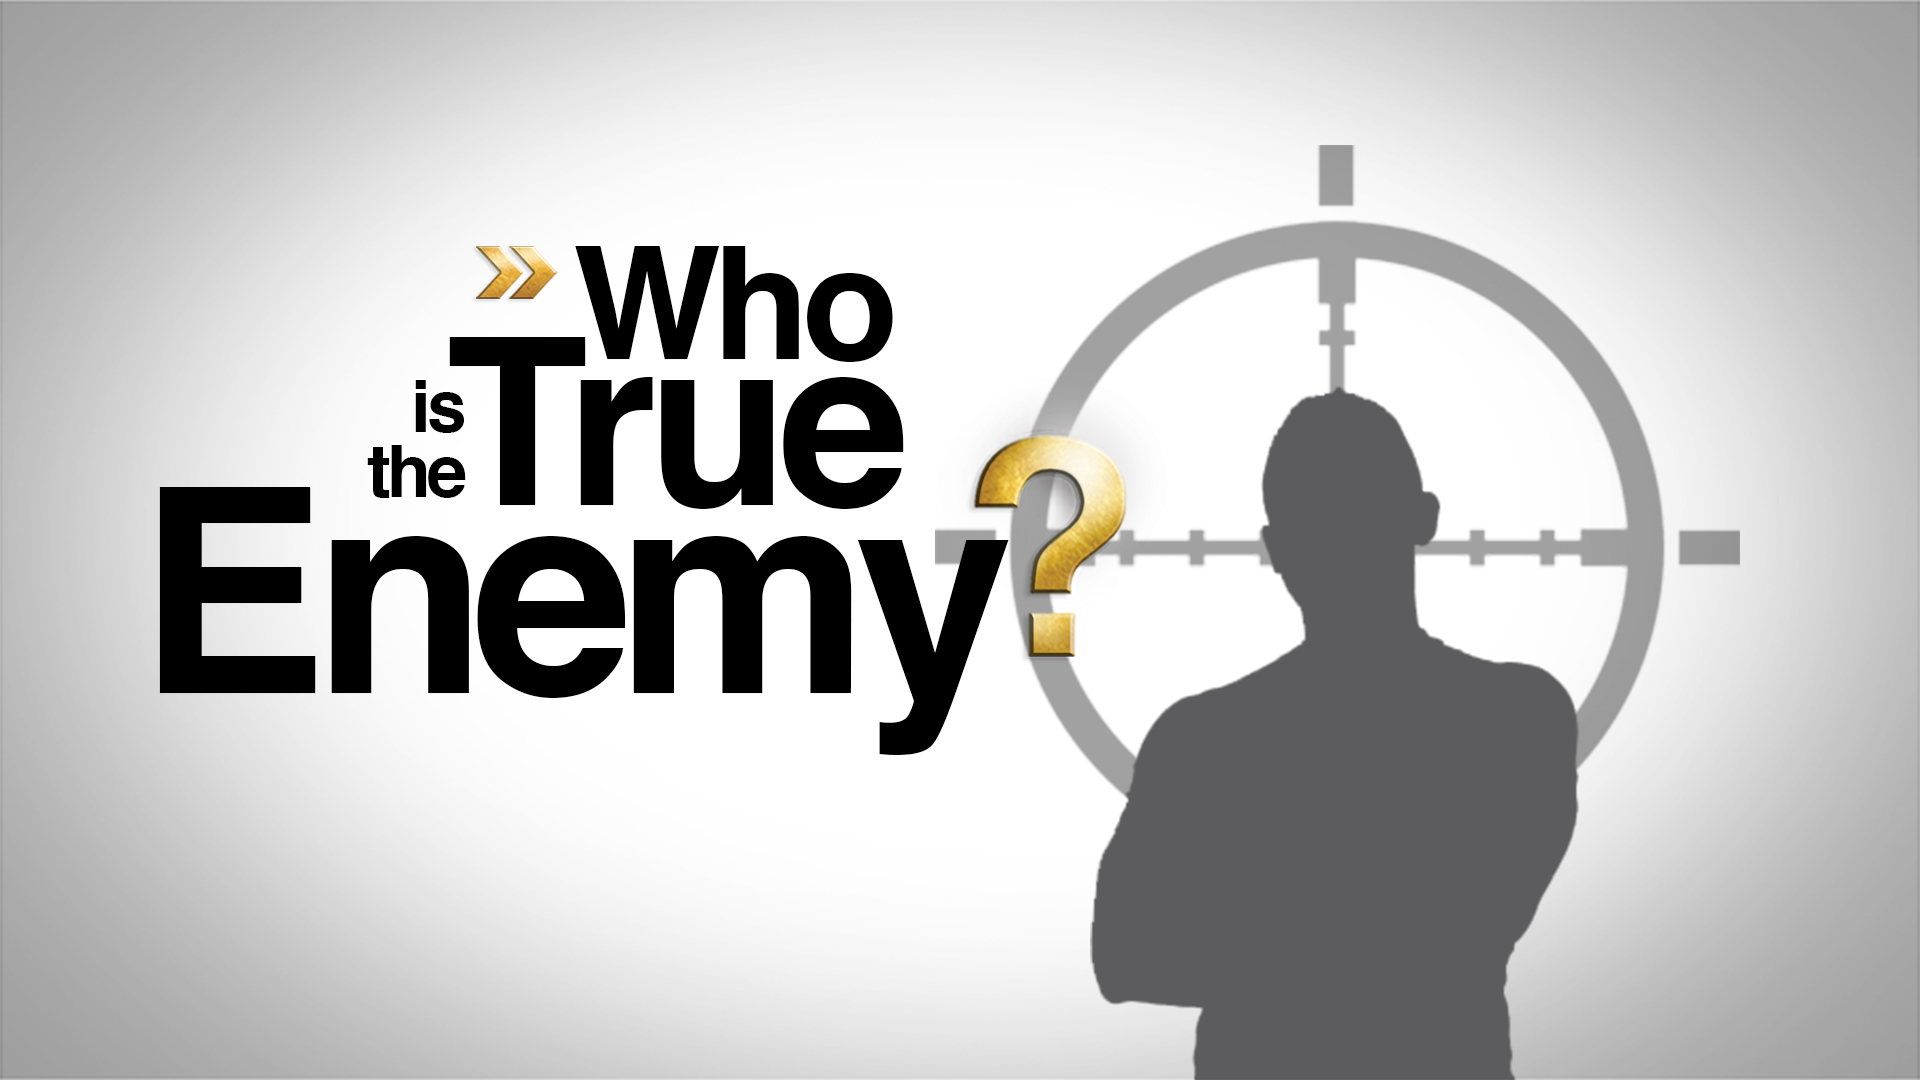 Who Is the True Enemy?